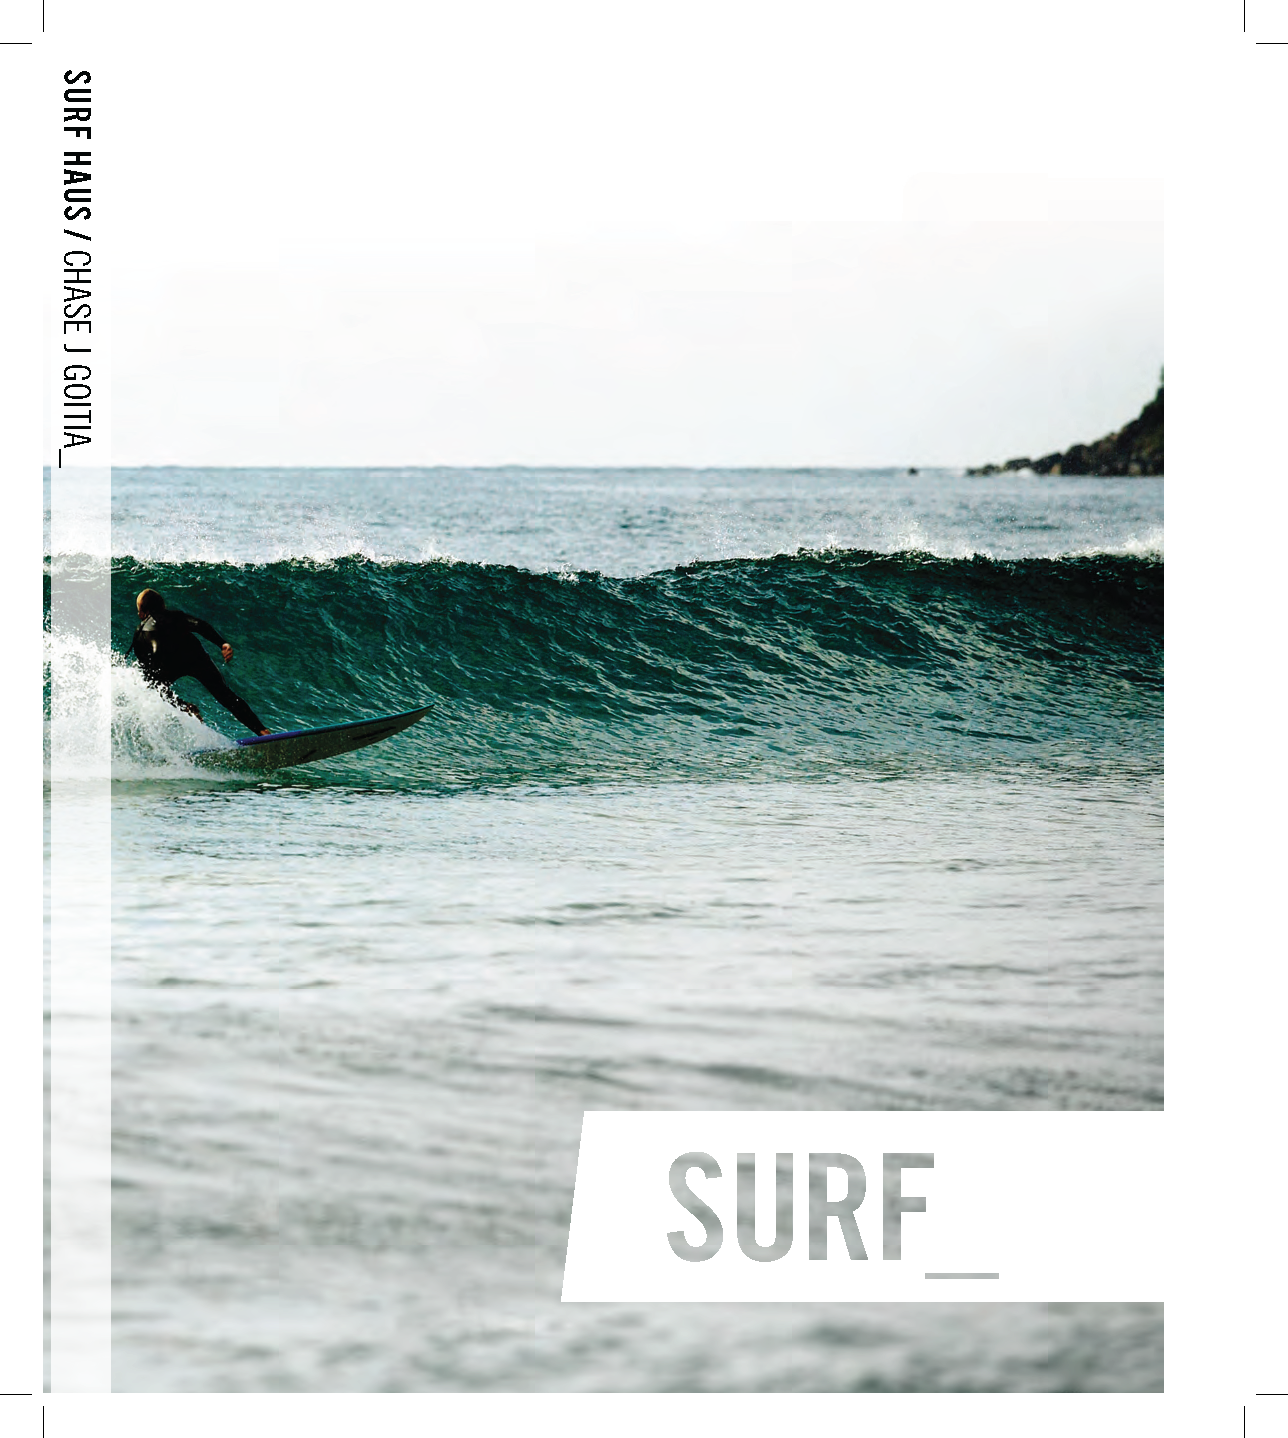 surf haus web_Page_01.png